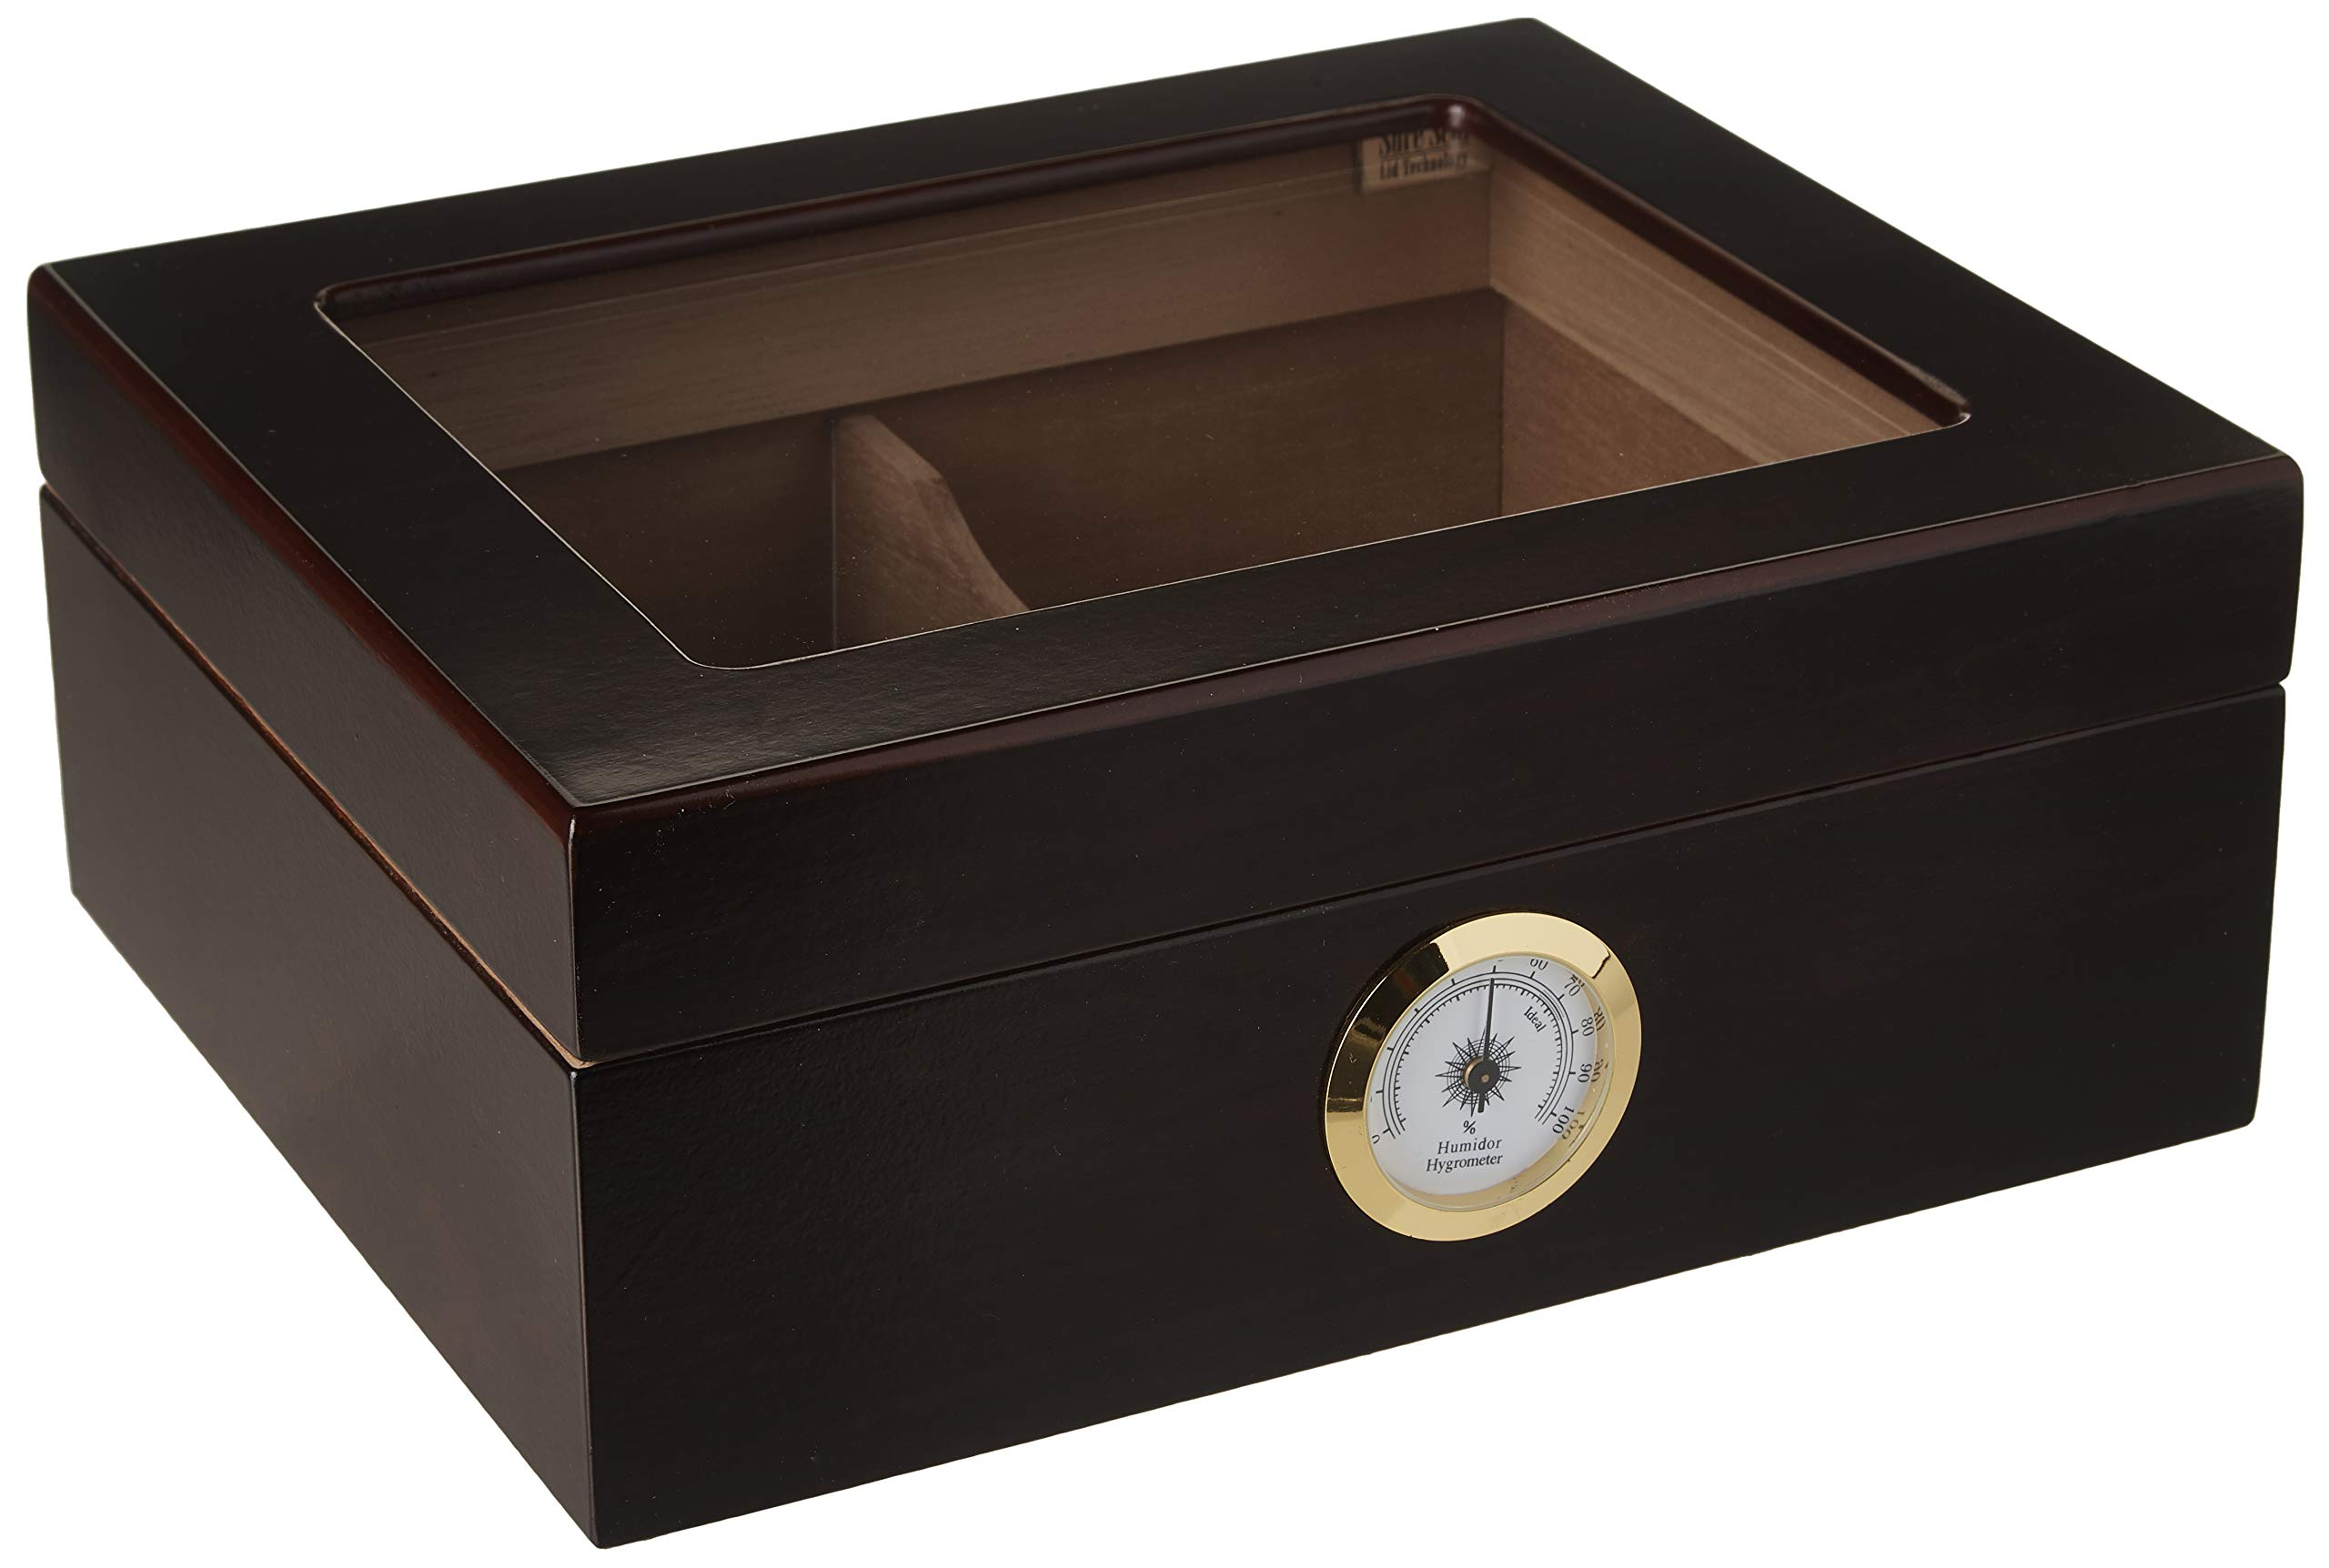 Desktop Humidor, Capri, with Tempered Glasstop, Cedar Divider, and Brass Ring Glass Hygrometer, Holds 25 to 50 Cigars, by Quality Importers by Quality Importers